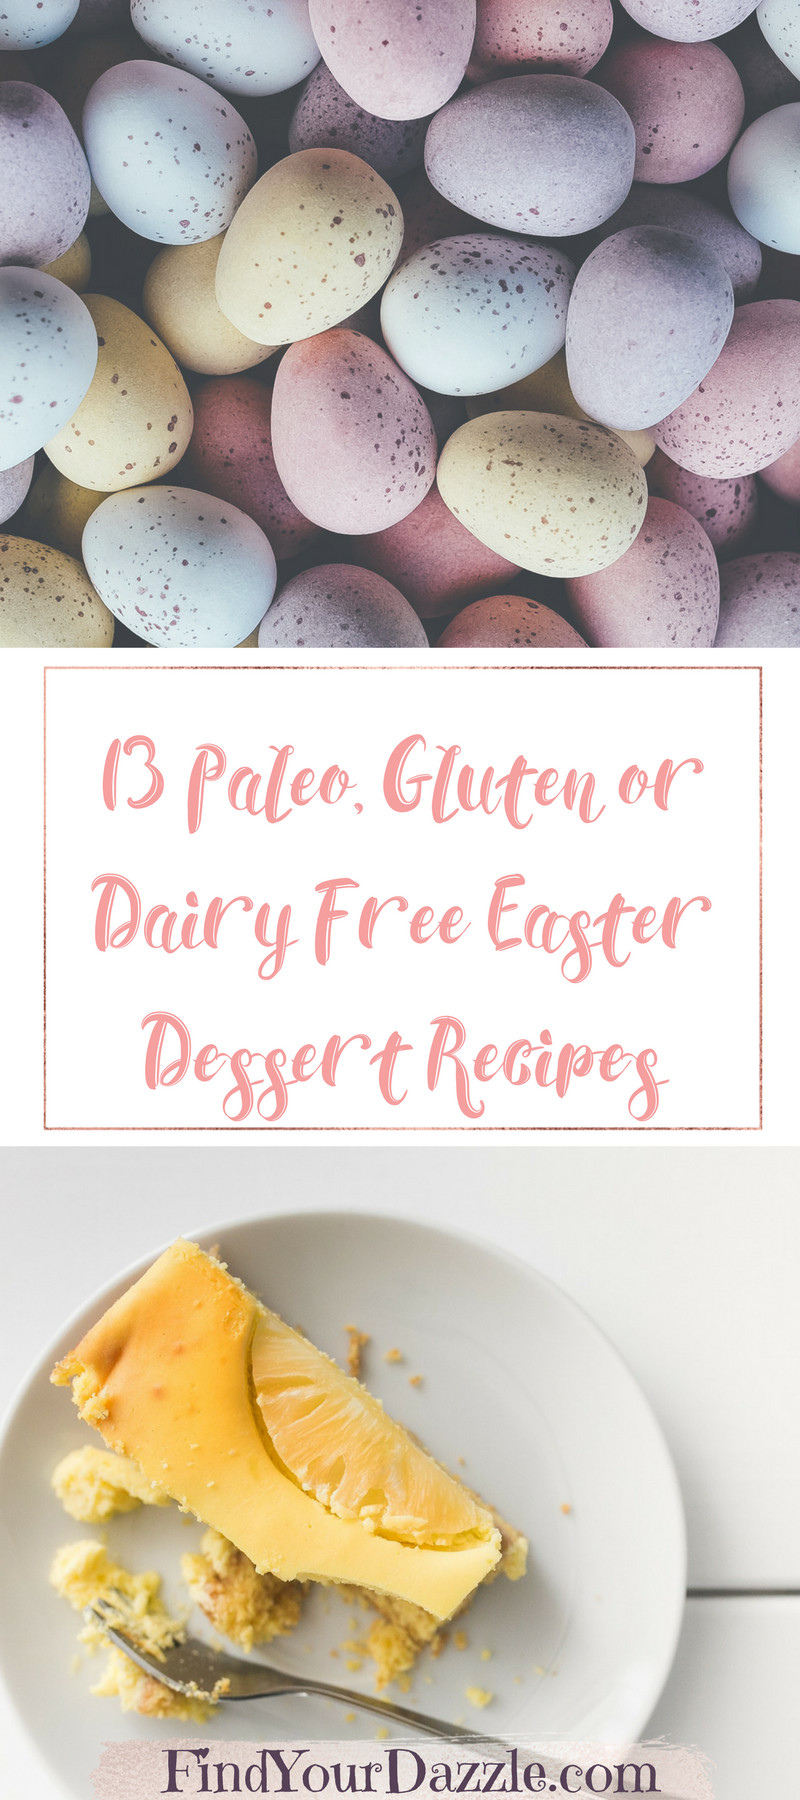 Dairy Free Desserts To Buy  13 Paleo Gluten or Dairy Free Easter Dessert Recipes